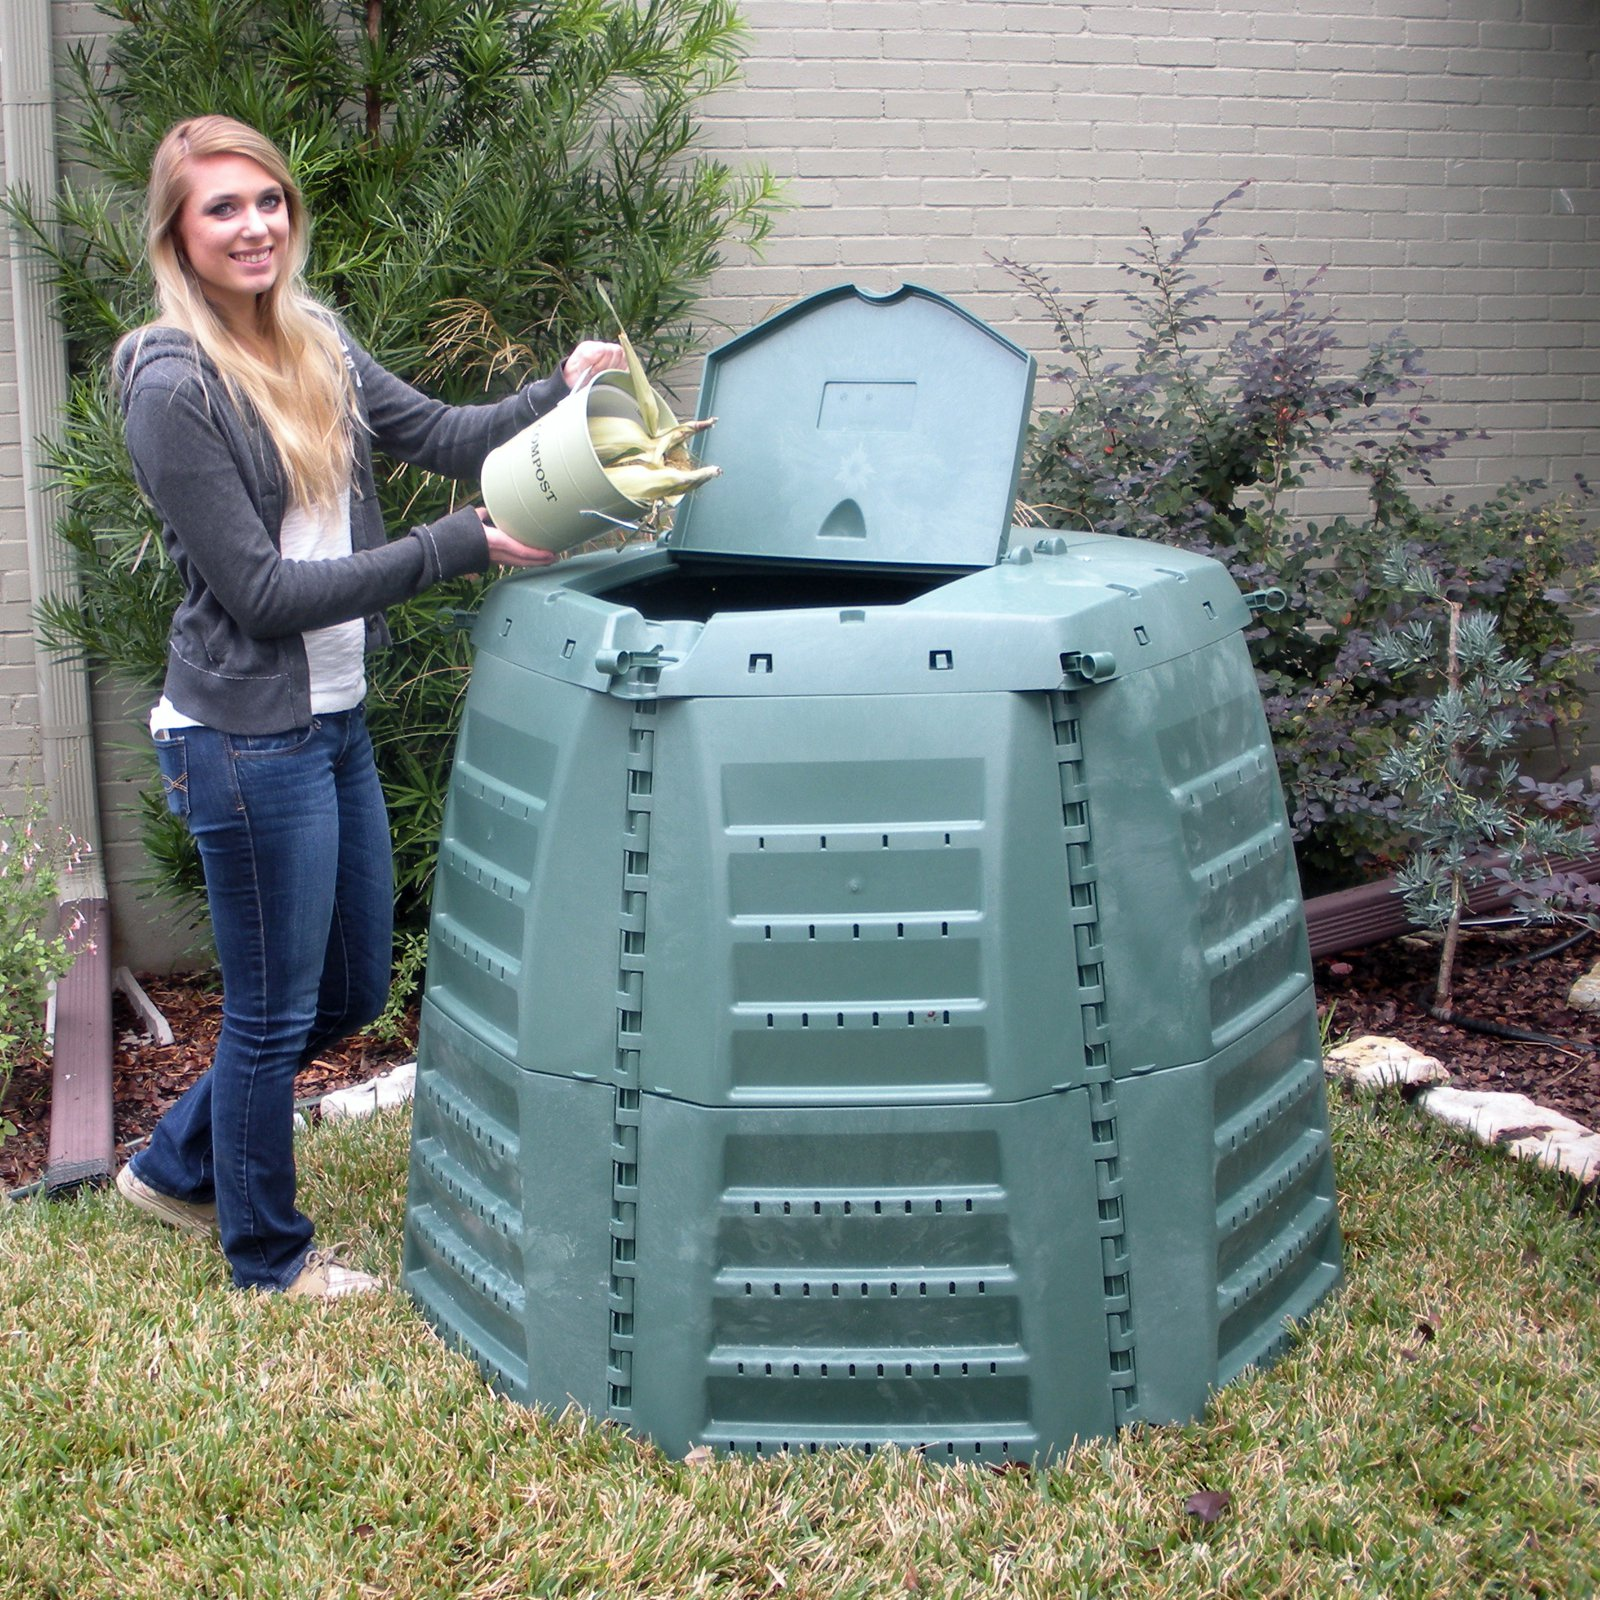 Exaco Thermo Star 1000 Recycled Plastic 267-gal. XXL Compost Bin by Exaco Trading Co